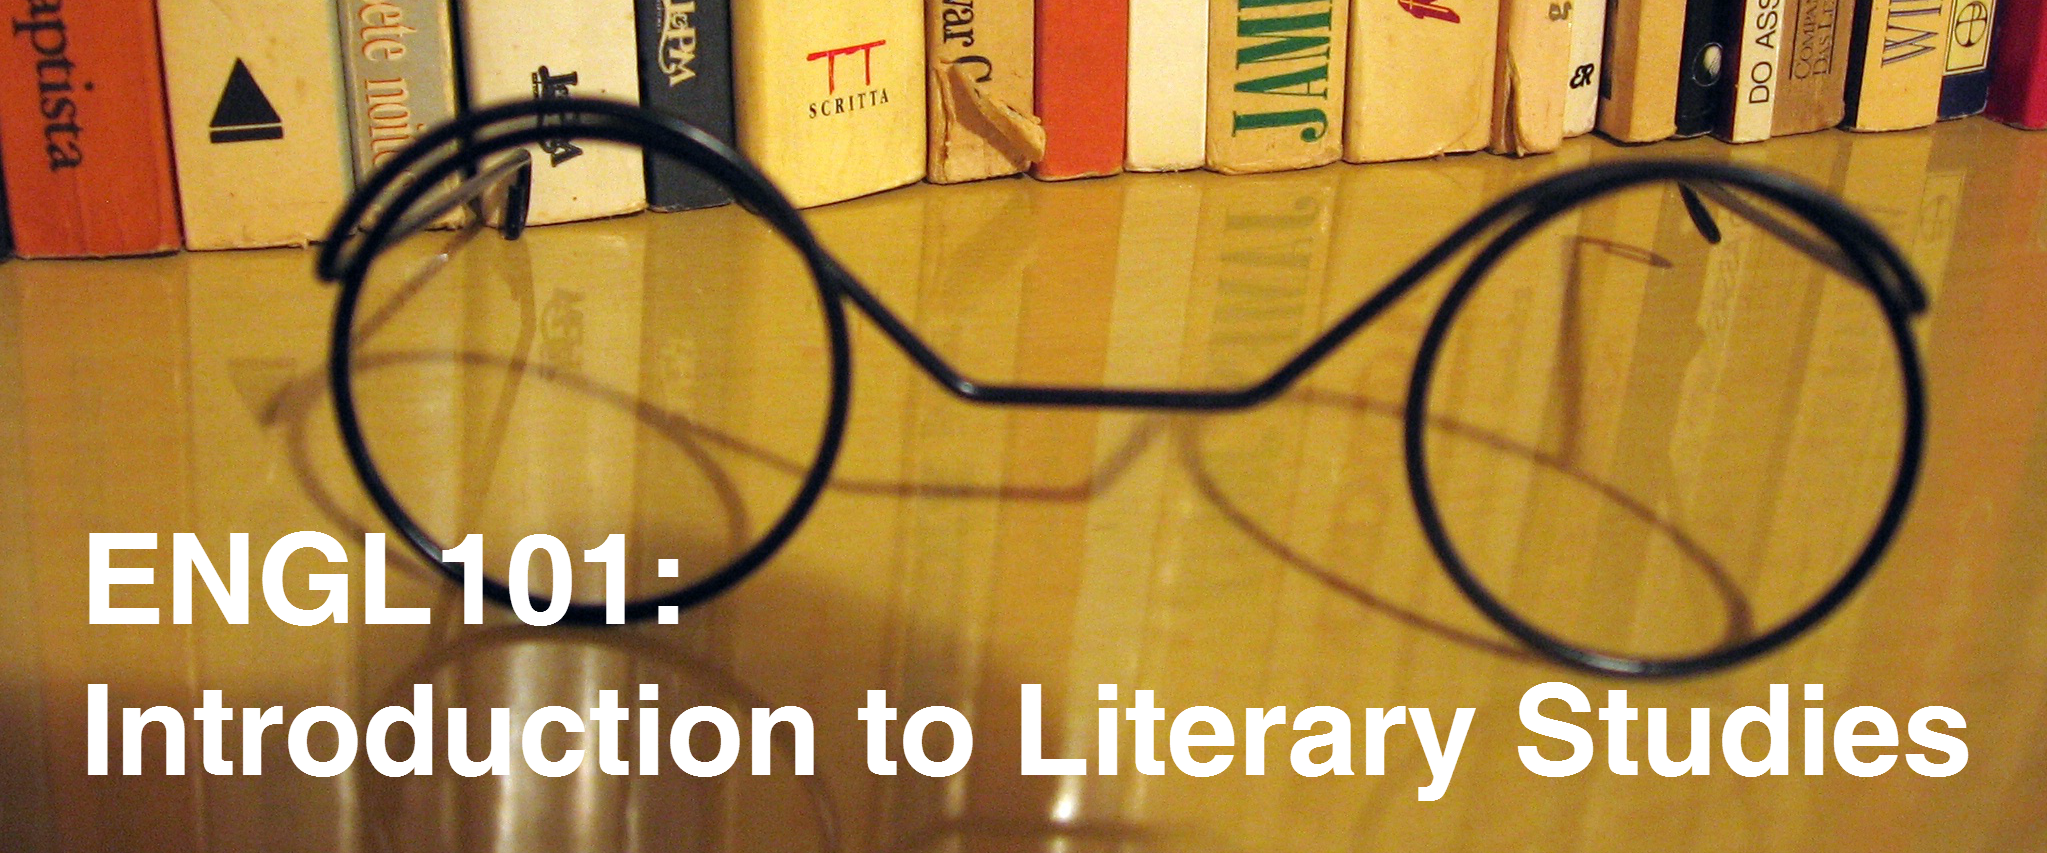 ENGL101: Introduction to Literary Studies